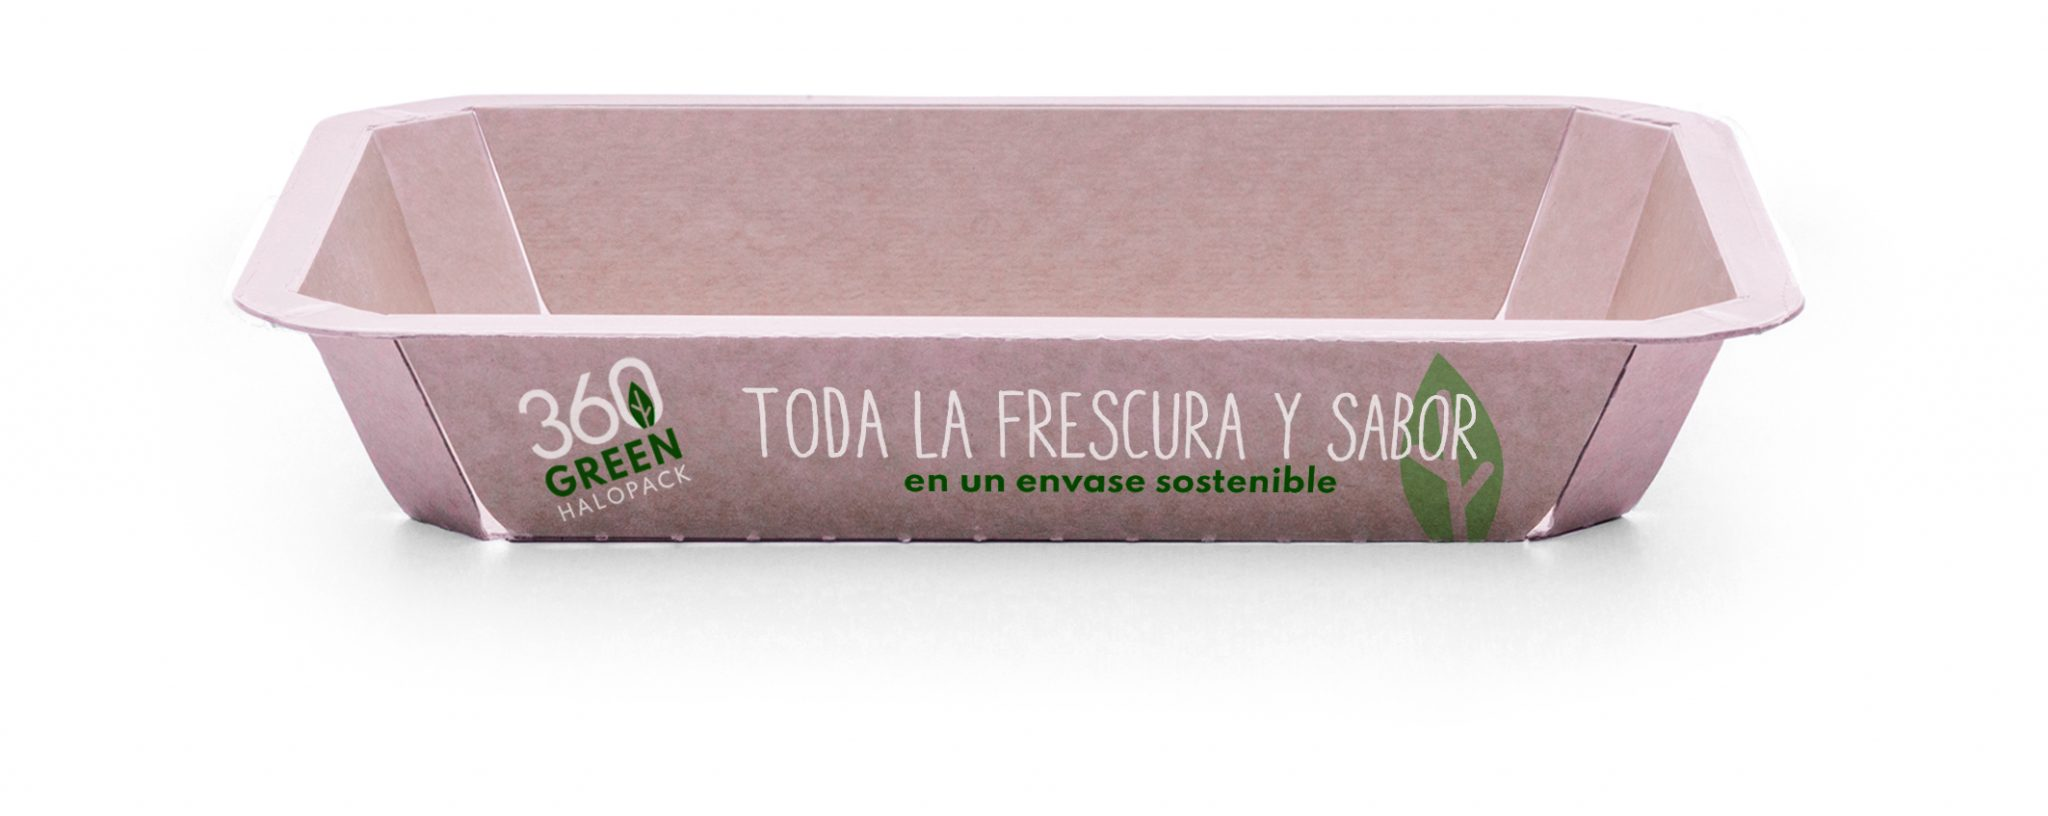 Hinojosa presents sustainable containers to preserve the freshness and flavour of agricultural produce at Fruit Attraction Fair